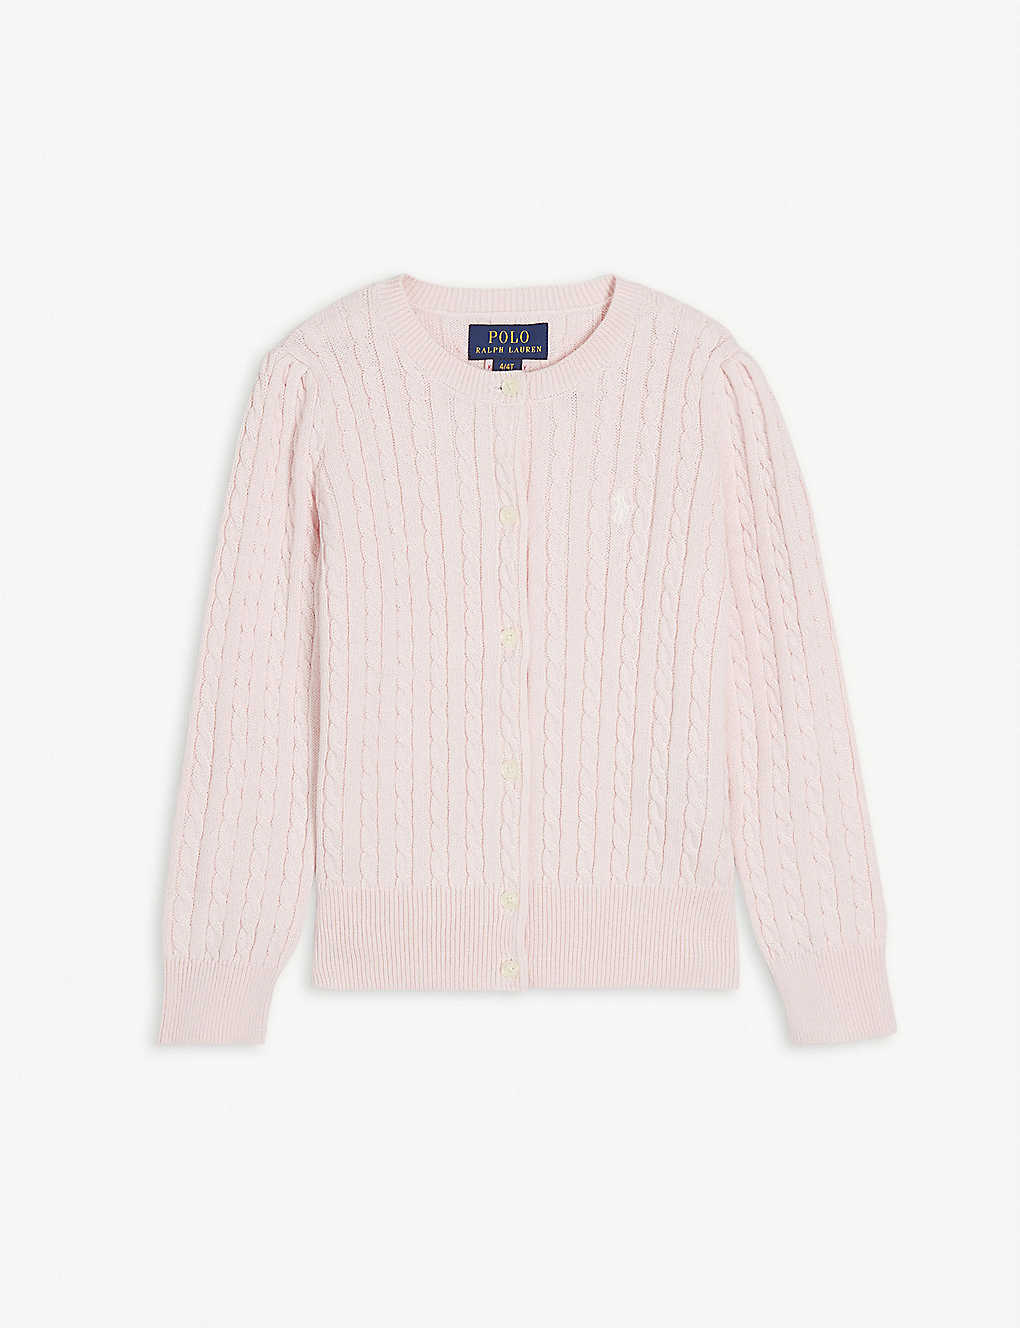 RALPH LAUREN: Cable-knit cotton cardigan 2-14 years